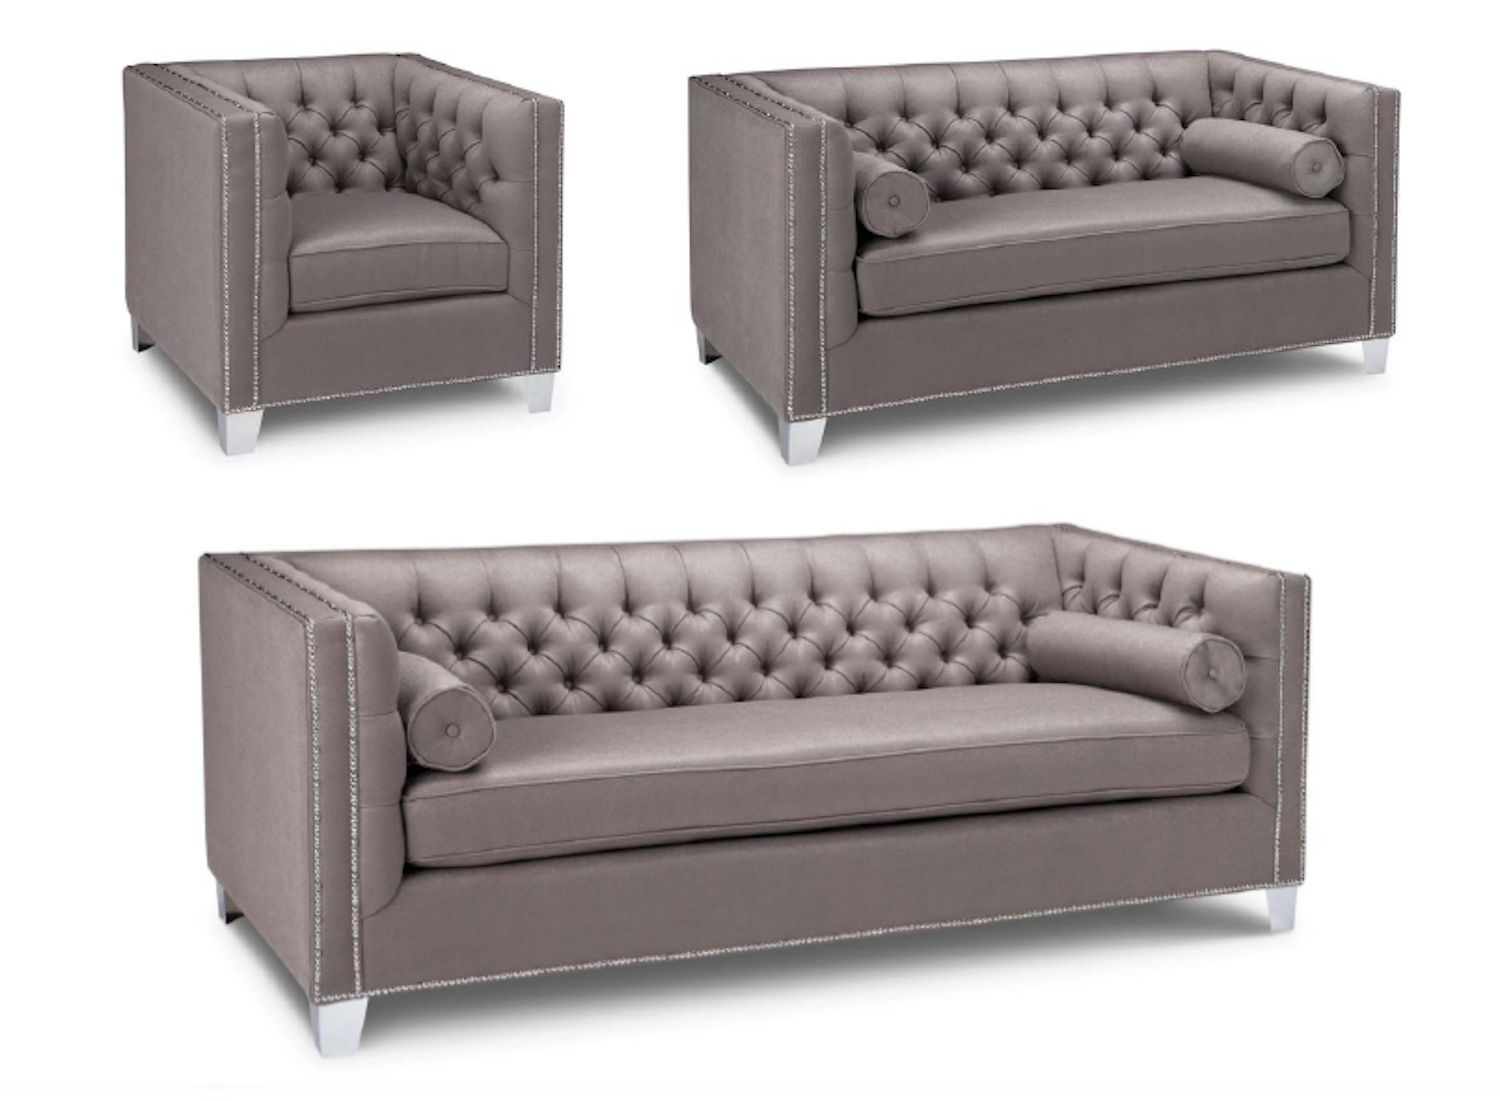 Canadian Made Sofa Only, 4407, Sofa Sets, Canadian Made Sofa Only from Midha Furniture by Midha Furniture serving Brampton, Mississauga, Etobicoke, Toronto, Scraborough, Caledon, Cambridge, Oakville, Markham, Ajax, Pickering, Oshawa, Richmondhill, Kitchener, Hamilton, Cambridge, Waterloo and GTA area